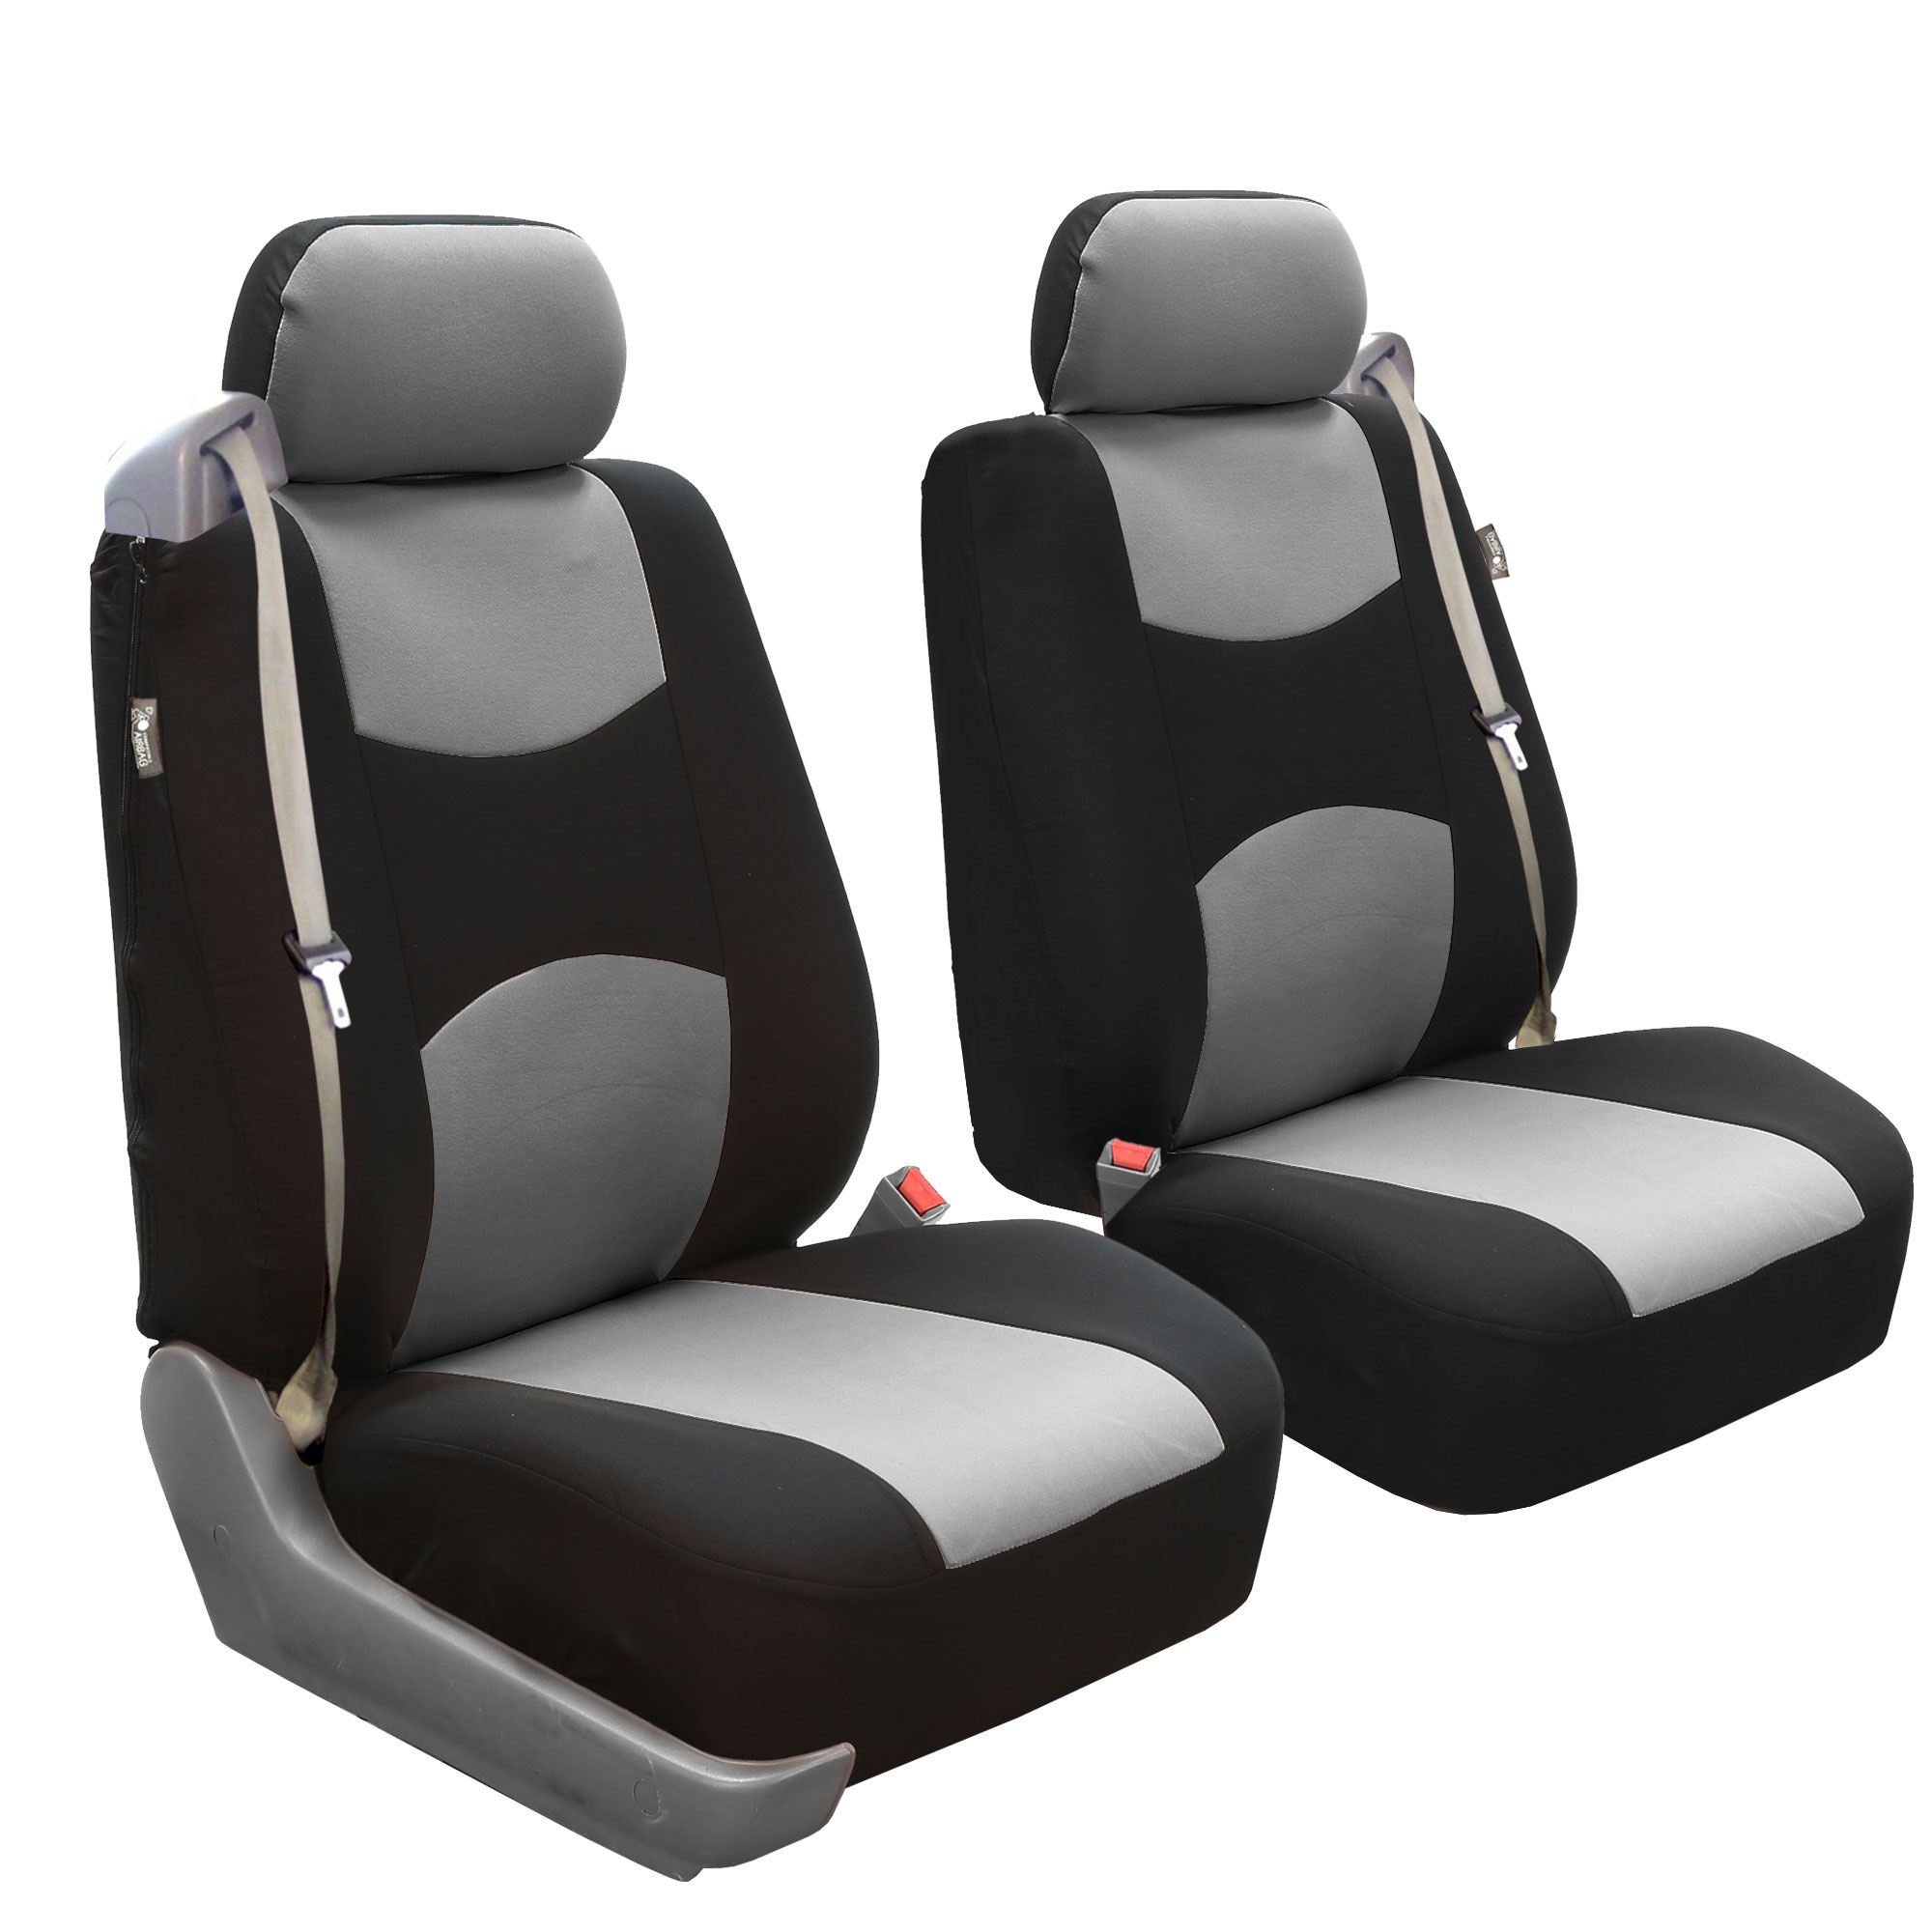 FH Group Flat Cloth Airbag and Built-In Seatbelt Compatible Low Back Seat Covers, Pair, Gray and Black